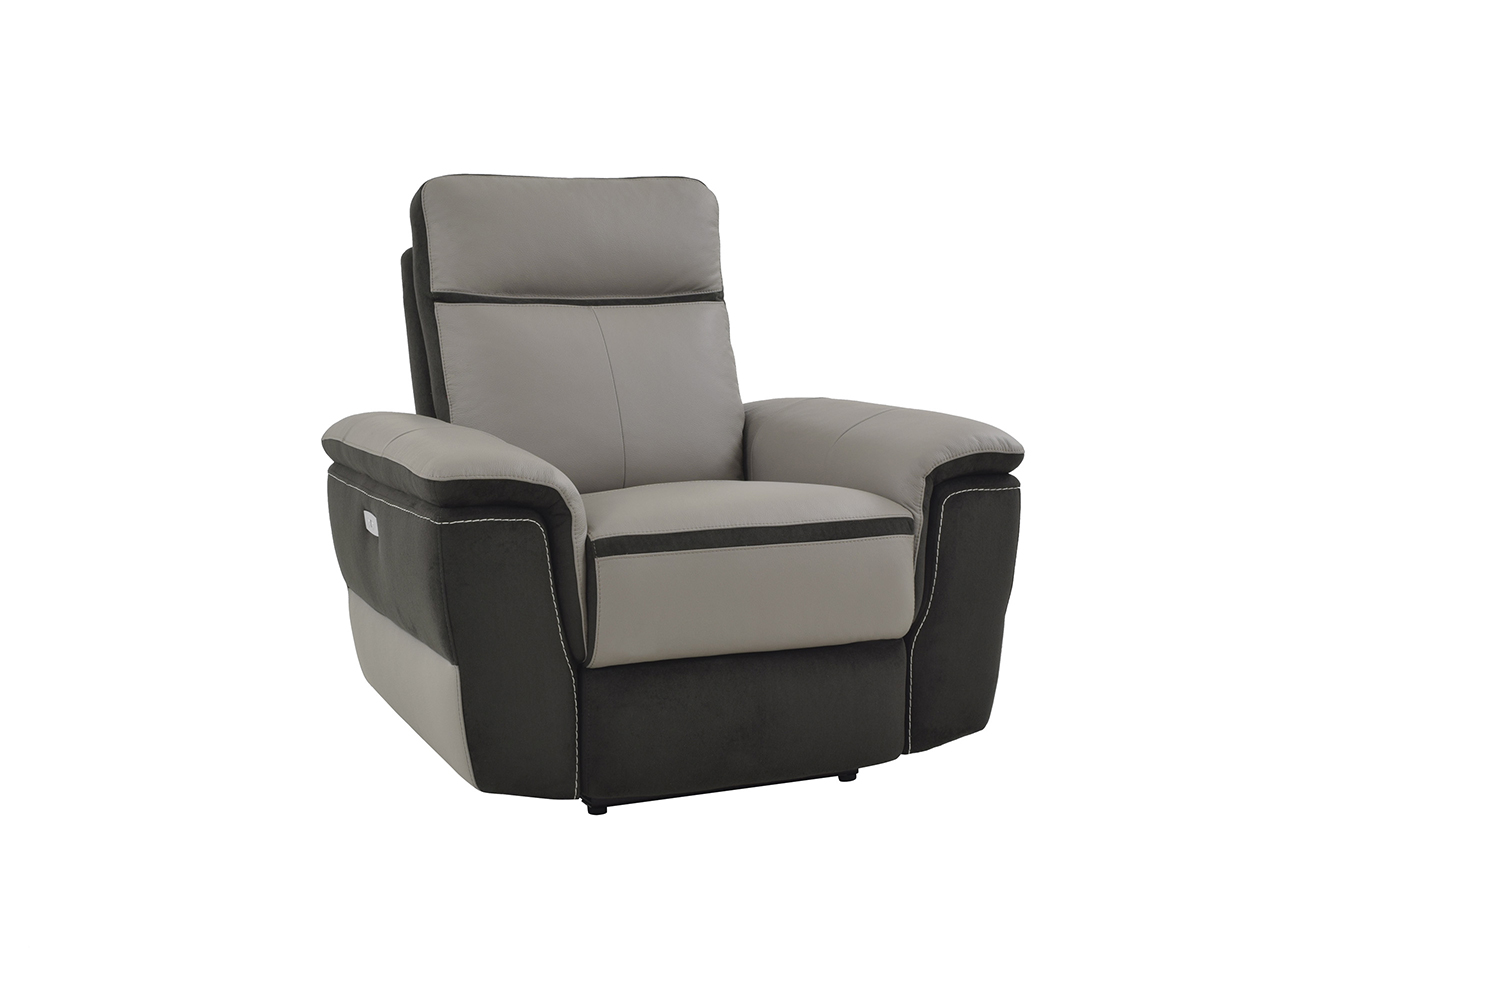 Homelegance Laertes Power Reclining Chair - Taupe Grey Top Grain Leather/Fabric